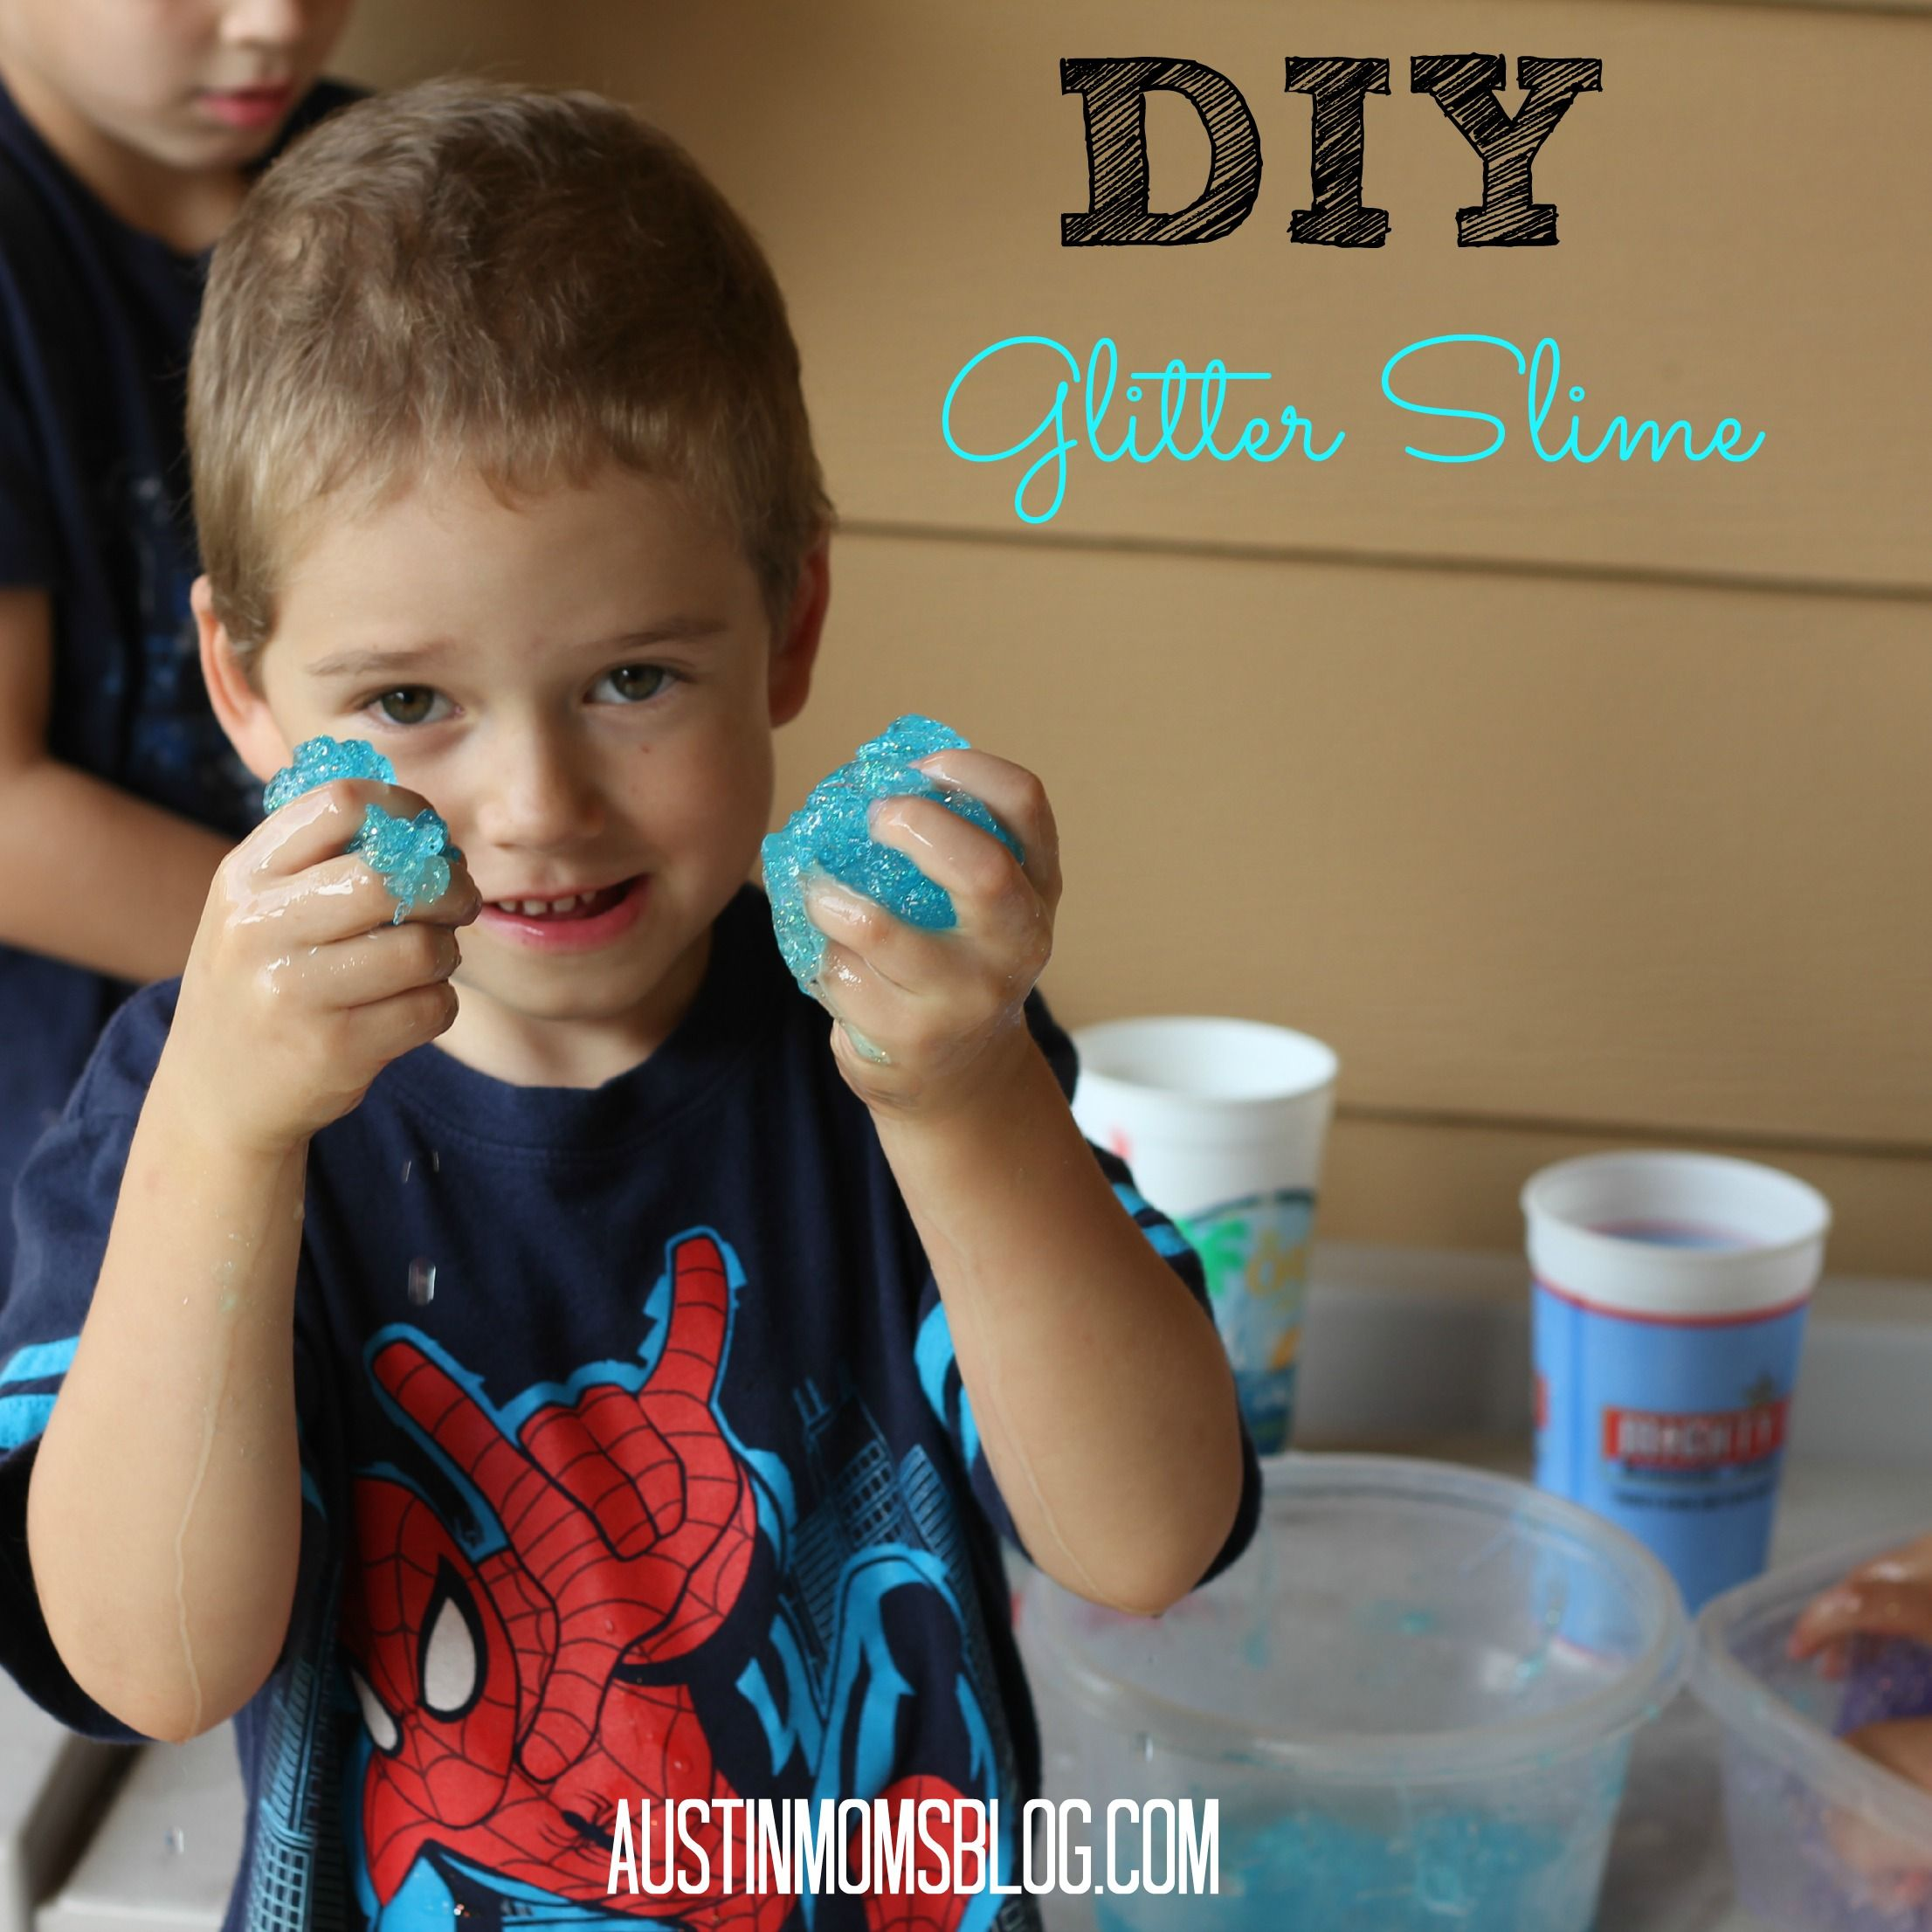 Gloomy Day Activities | Austin Moms Blog | DIY Glitter Slime